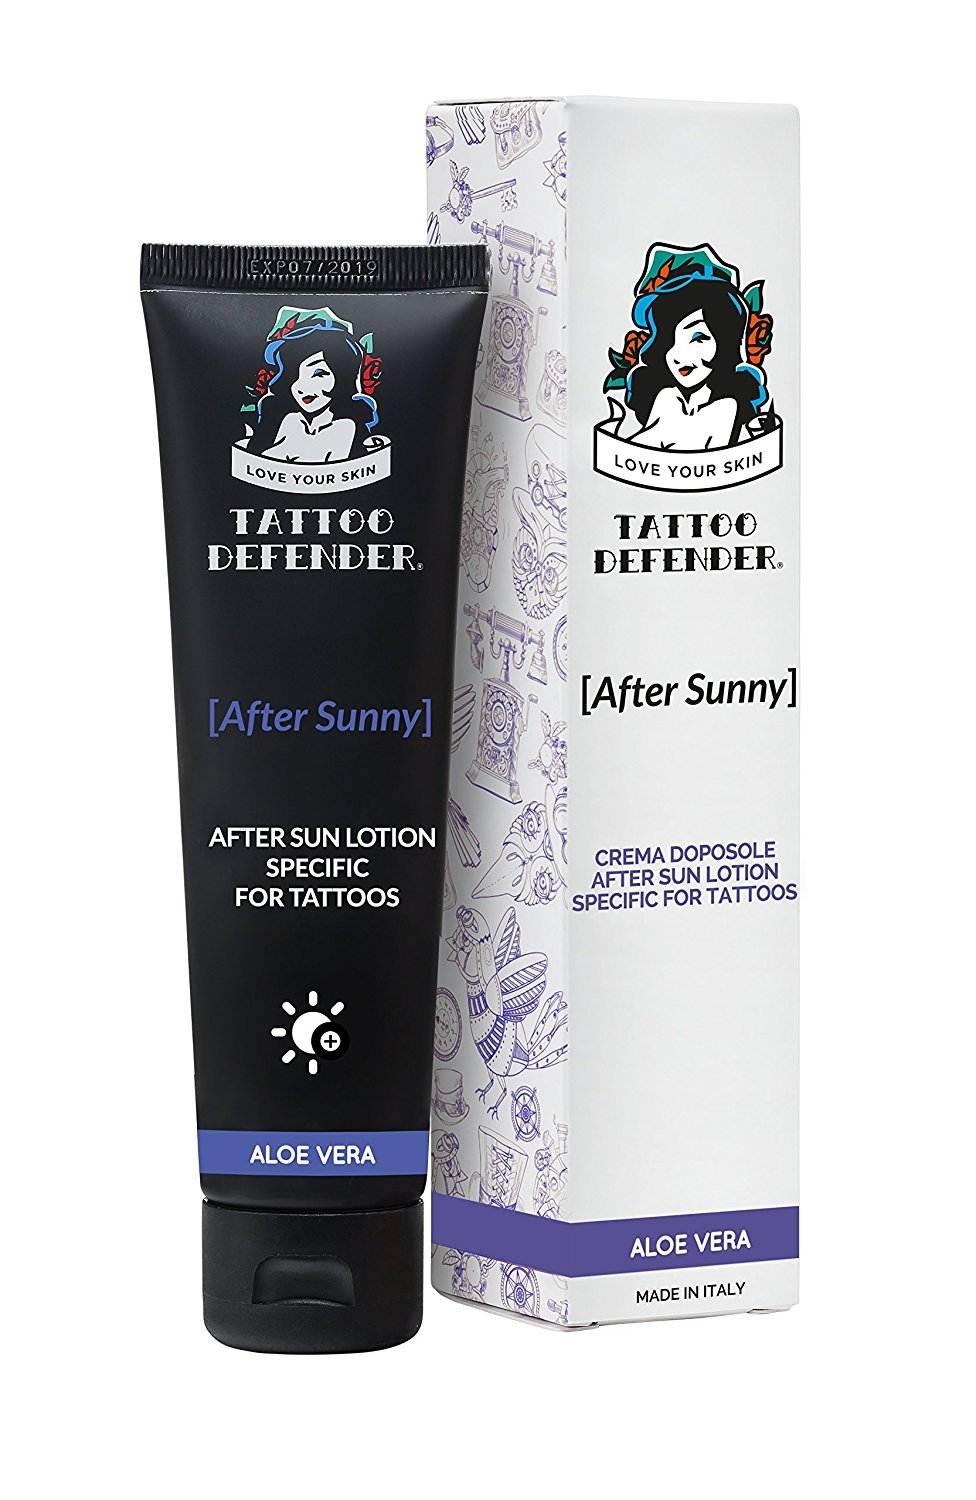 Tattoo Defender After Sunny - After Sun lotion specific for tattoos 100ml